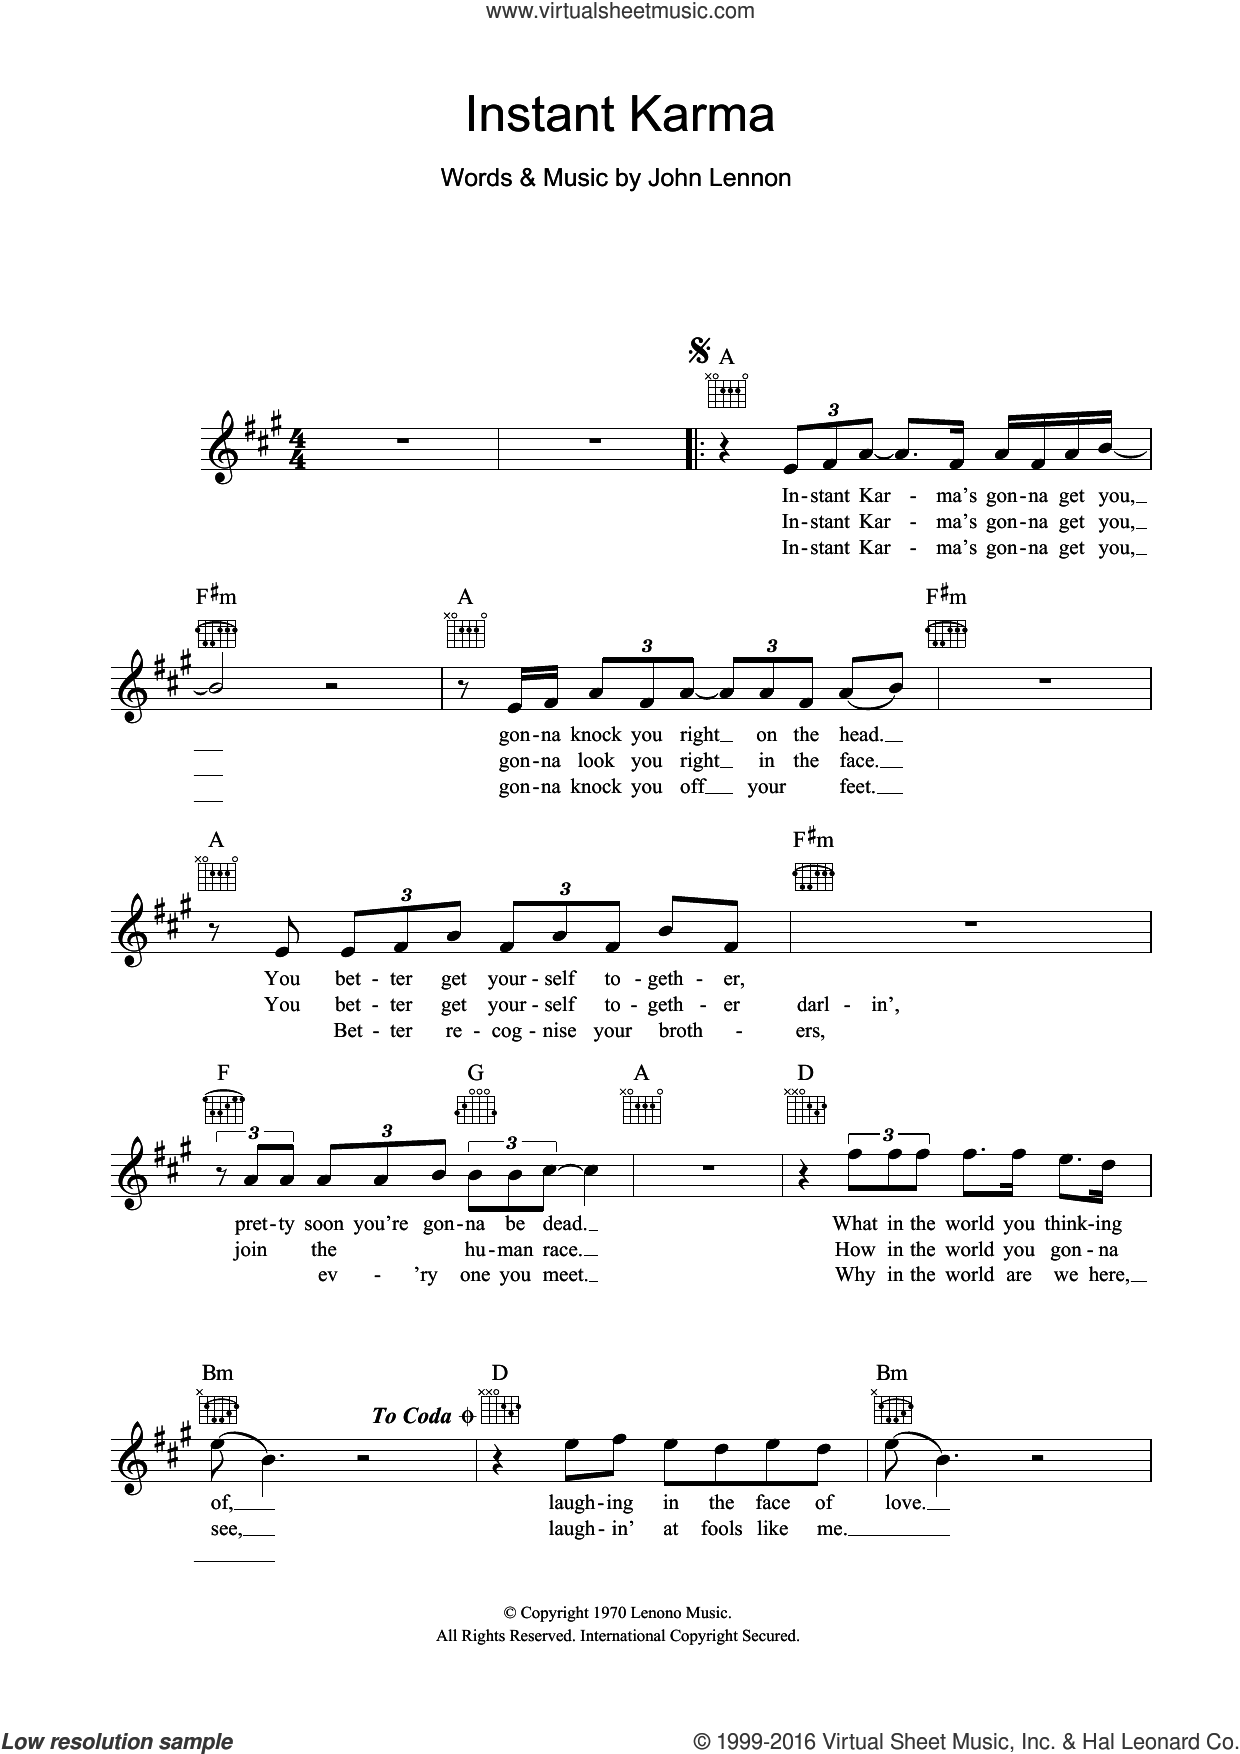 Instant Karma sheet music for voice and other instruments (fake book) by John Lennon, intermediate skill level